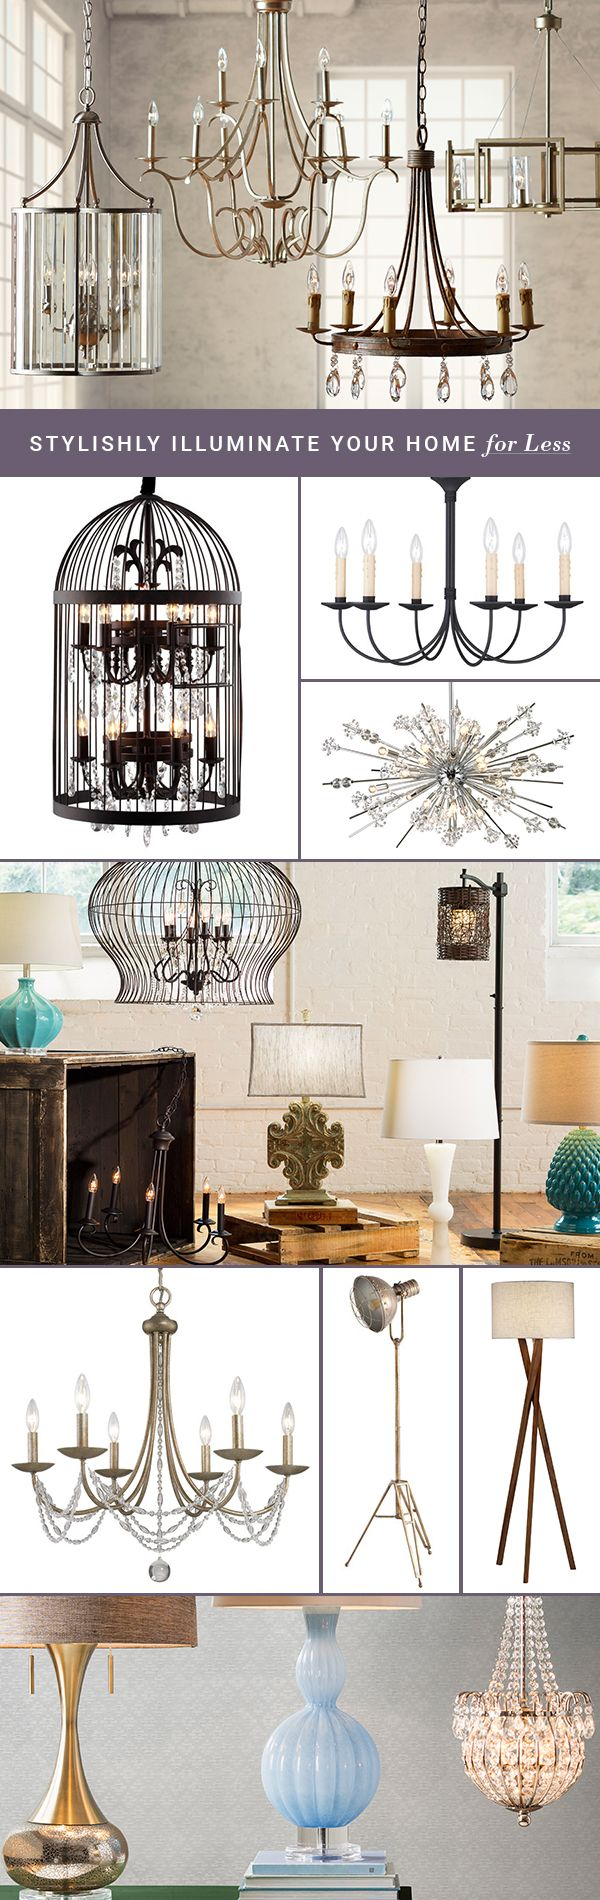 Looking for some bright decorating ideas? Whether it's a pendant, table lamp, or chandelier, lighting can have a major effect on the look and feel of your space. Check out Joss & Main's s selection for everything from statement pieces to the ideal reading lamp and get ready to see your home in a whole new light. Sign up at Joss & Main and get up to 70% off!